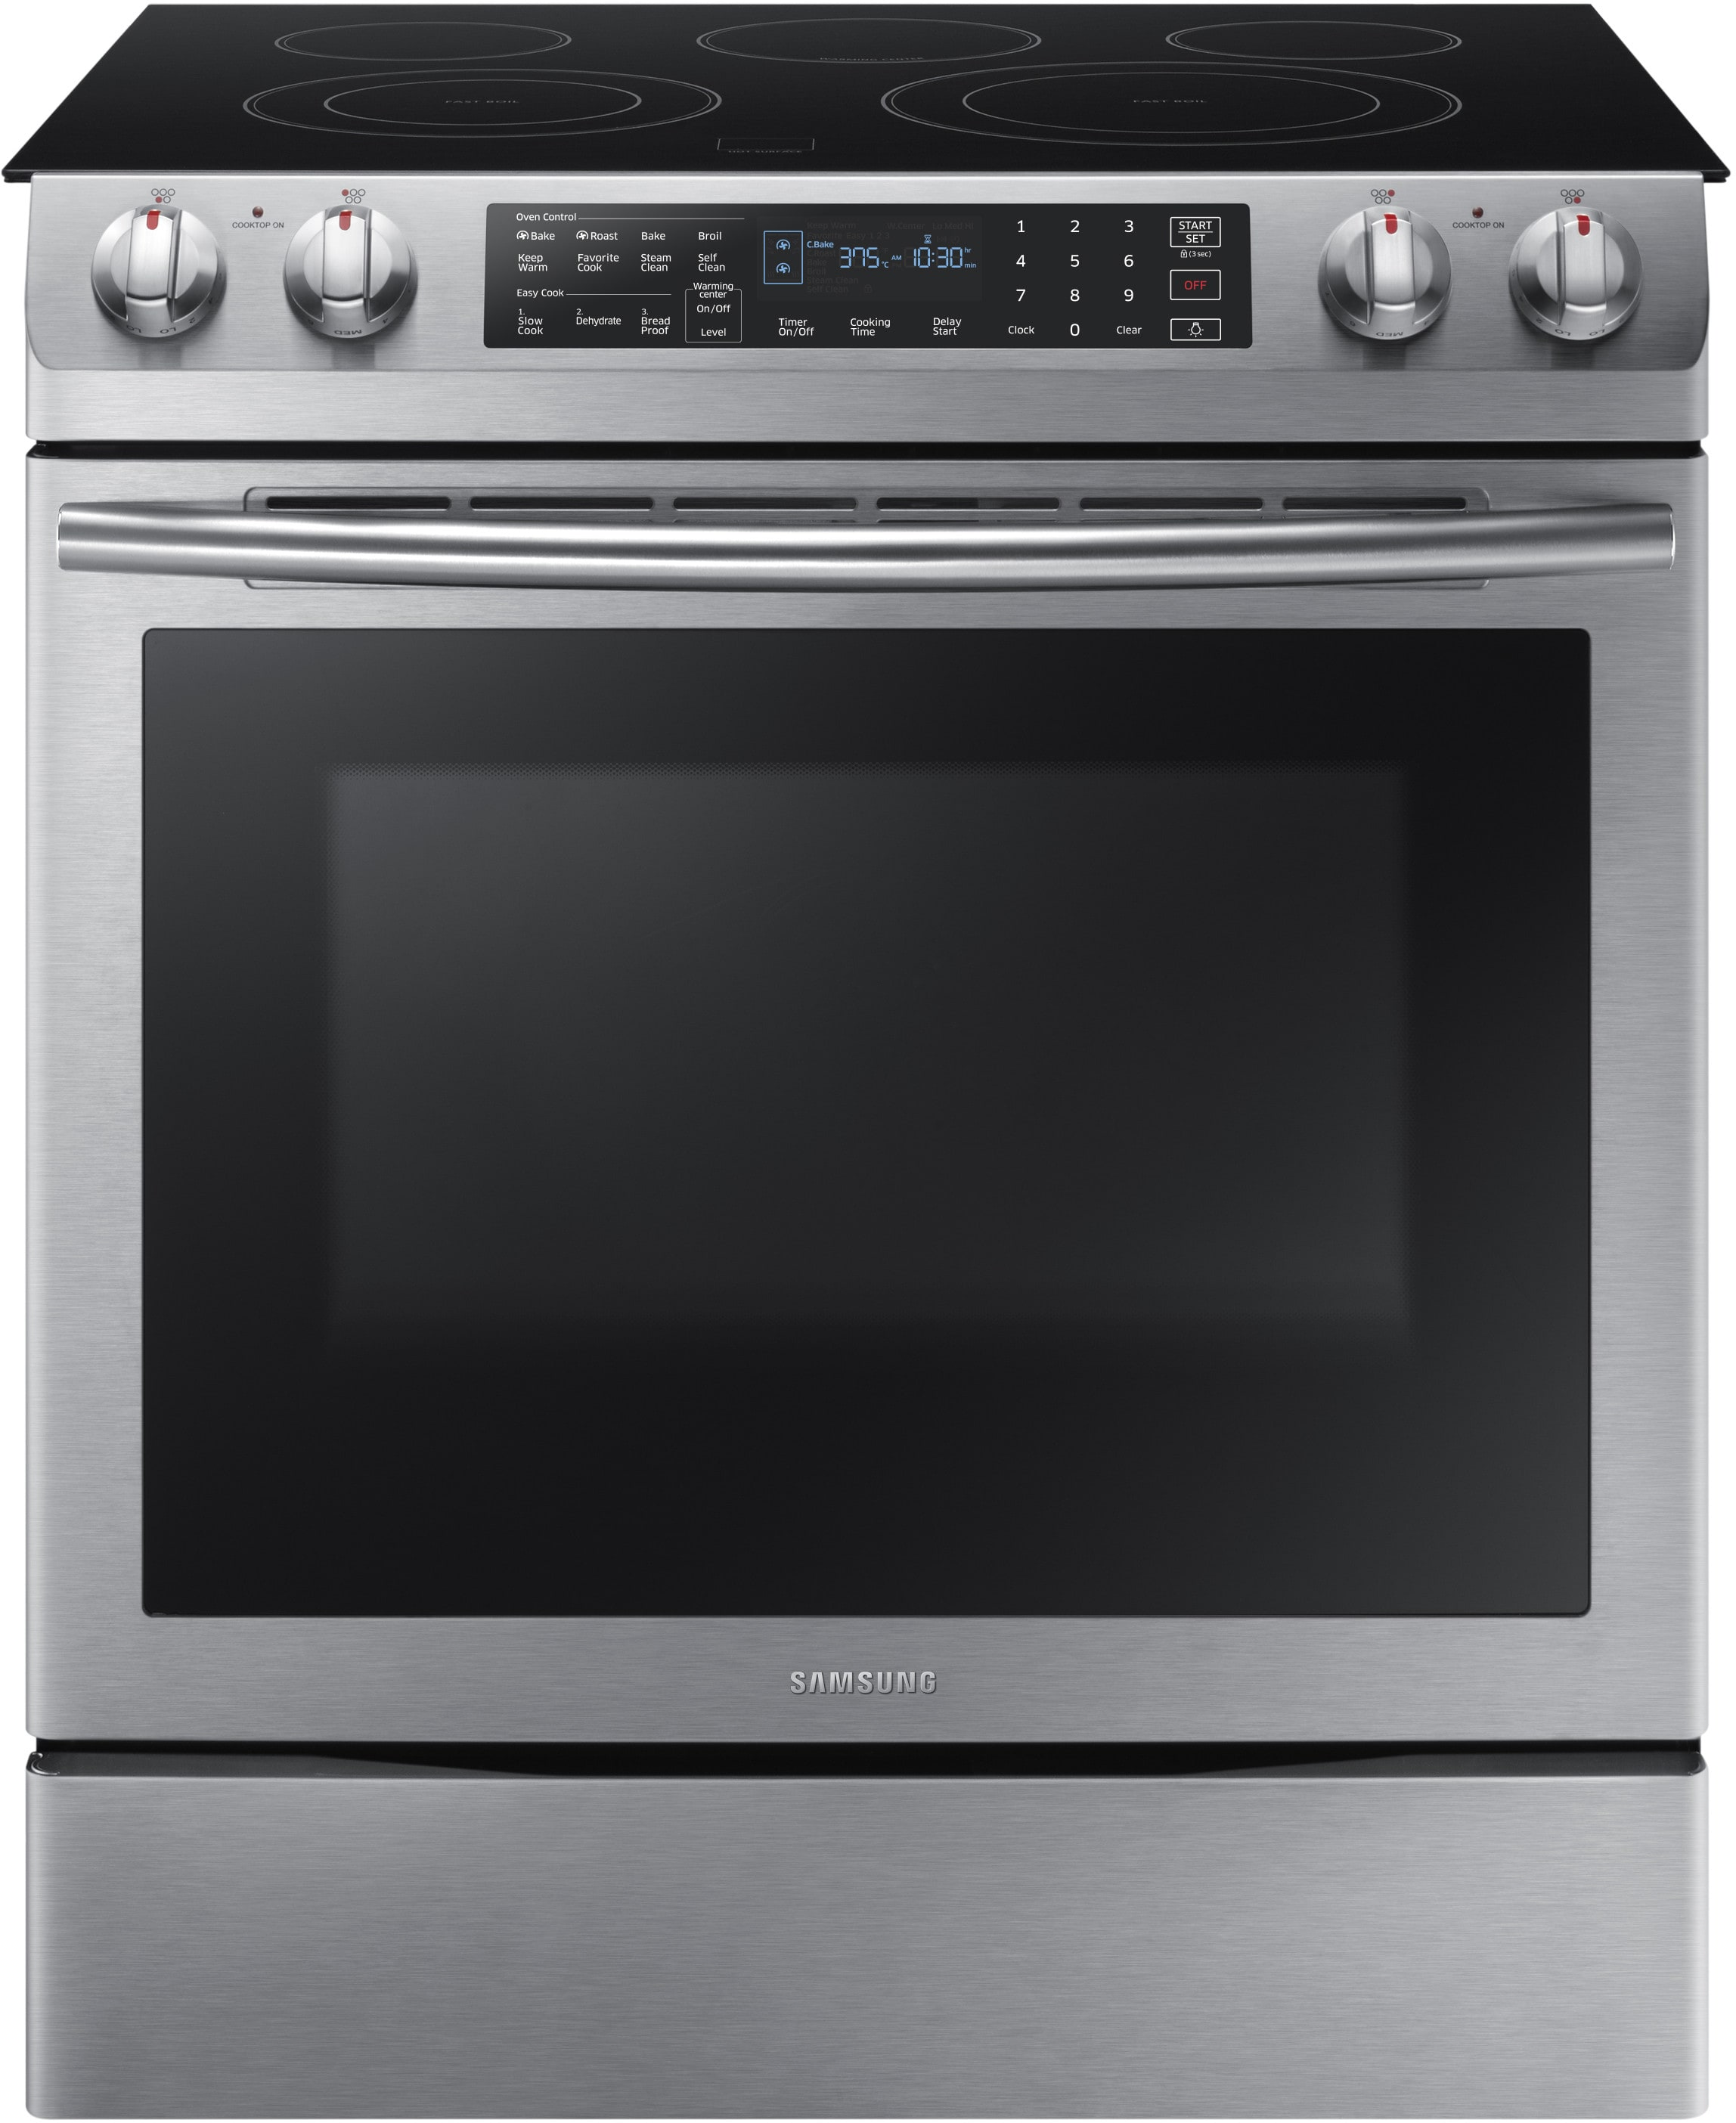 Samsung Ne58k9430ss 30 Inch Slide In Electric Range With 5